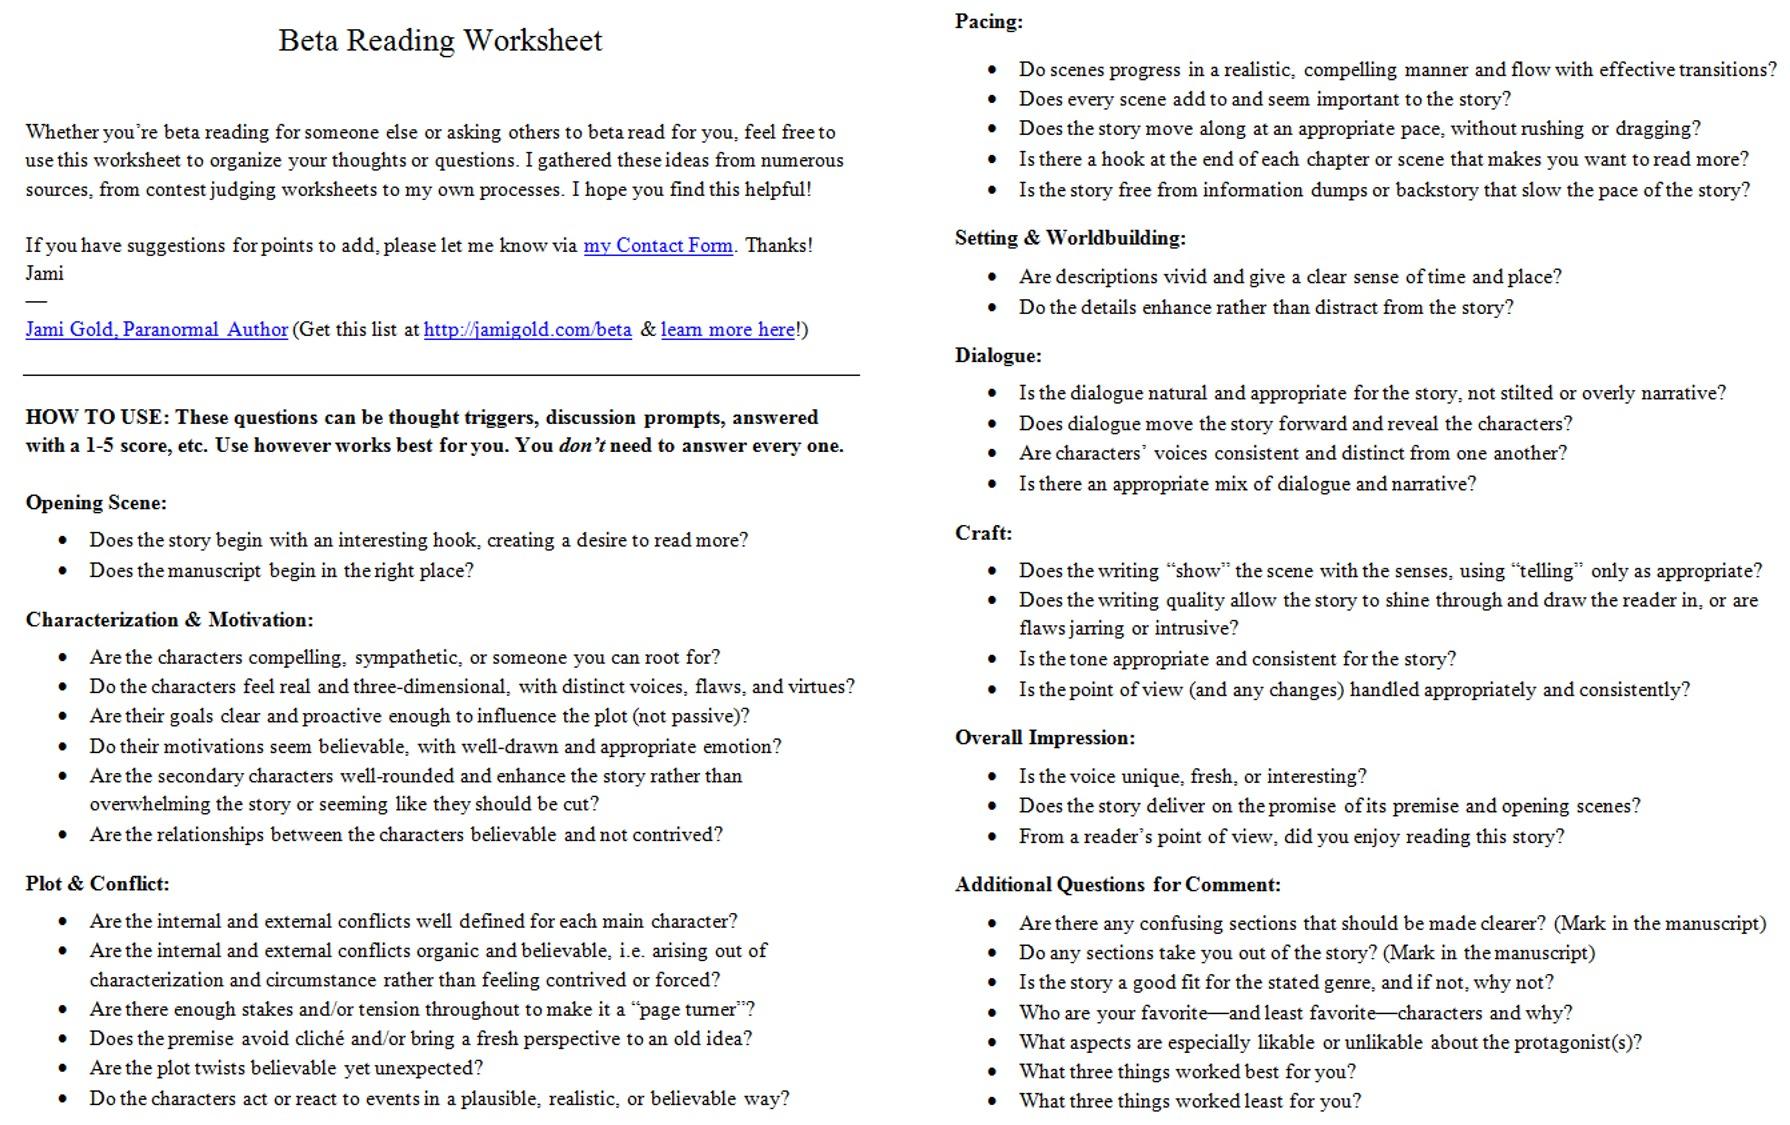 Aldiablosus  Terrific Worksheets For Writers  Jami Gold Paranormal Author With Remarkable Screen Shot Of The Twopage Beta Reading Worksheet With Captivating Volume Prisms Worksheet Also Art Vocabulary Worksheets In Addition Pancake Day Worksheet And Worksheet In Spreadsheet As Well As French Adjectives Worksheets Additionally Create Own Handwriting Worksheets From Jamigoldcom With Aldiablosus  Remarkable Worksheets For Writers  Jami Gold Paranormal Author With Captivating Screen Shot Of The Twopage Beta Reading Worksheet And Terrific Volume Prisms Worksheet Also Art Vocabulary Worksheets In Addition Pancake Day Worksheet From Jamigoldcom